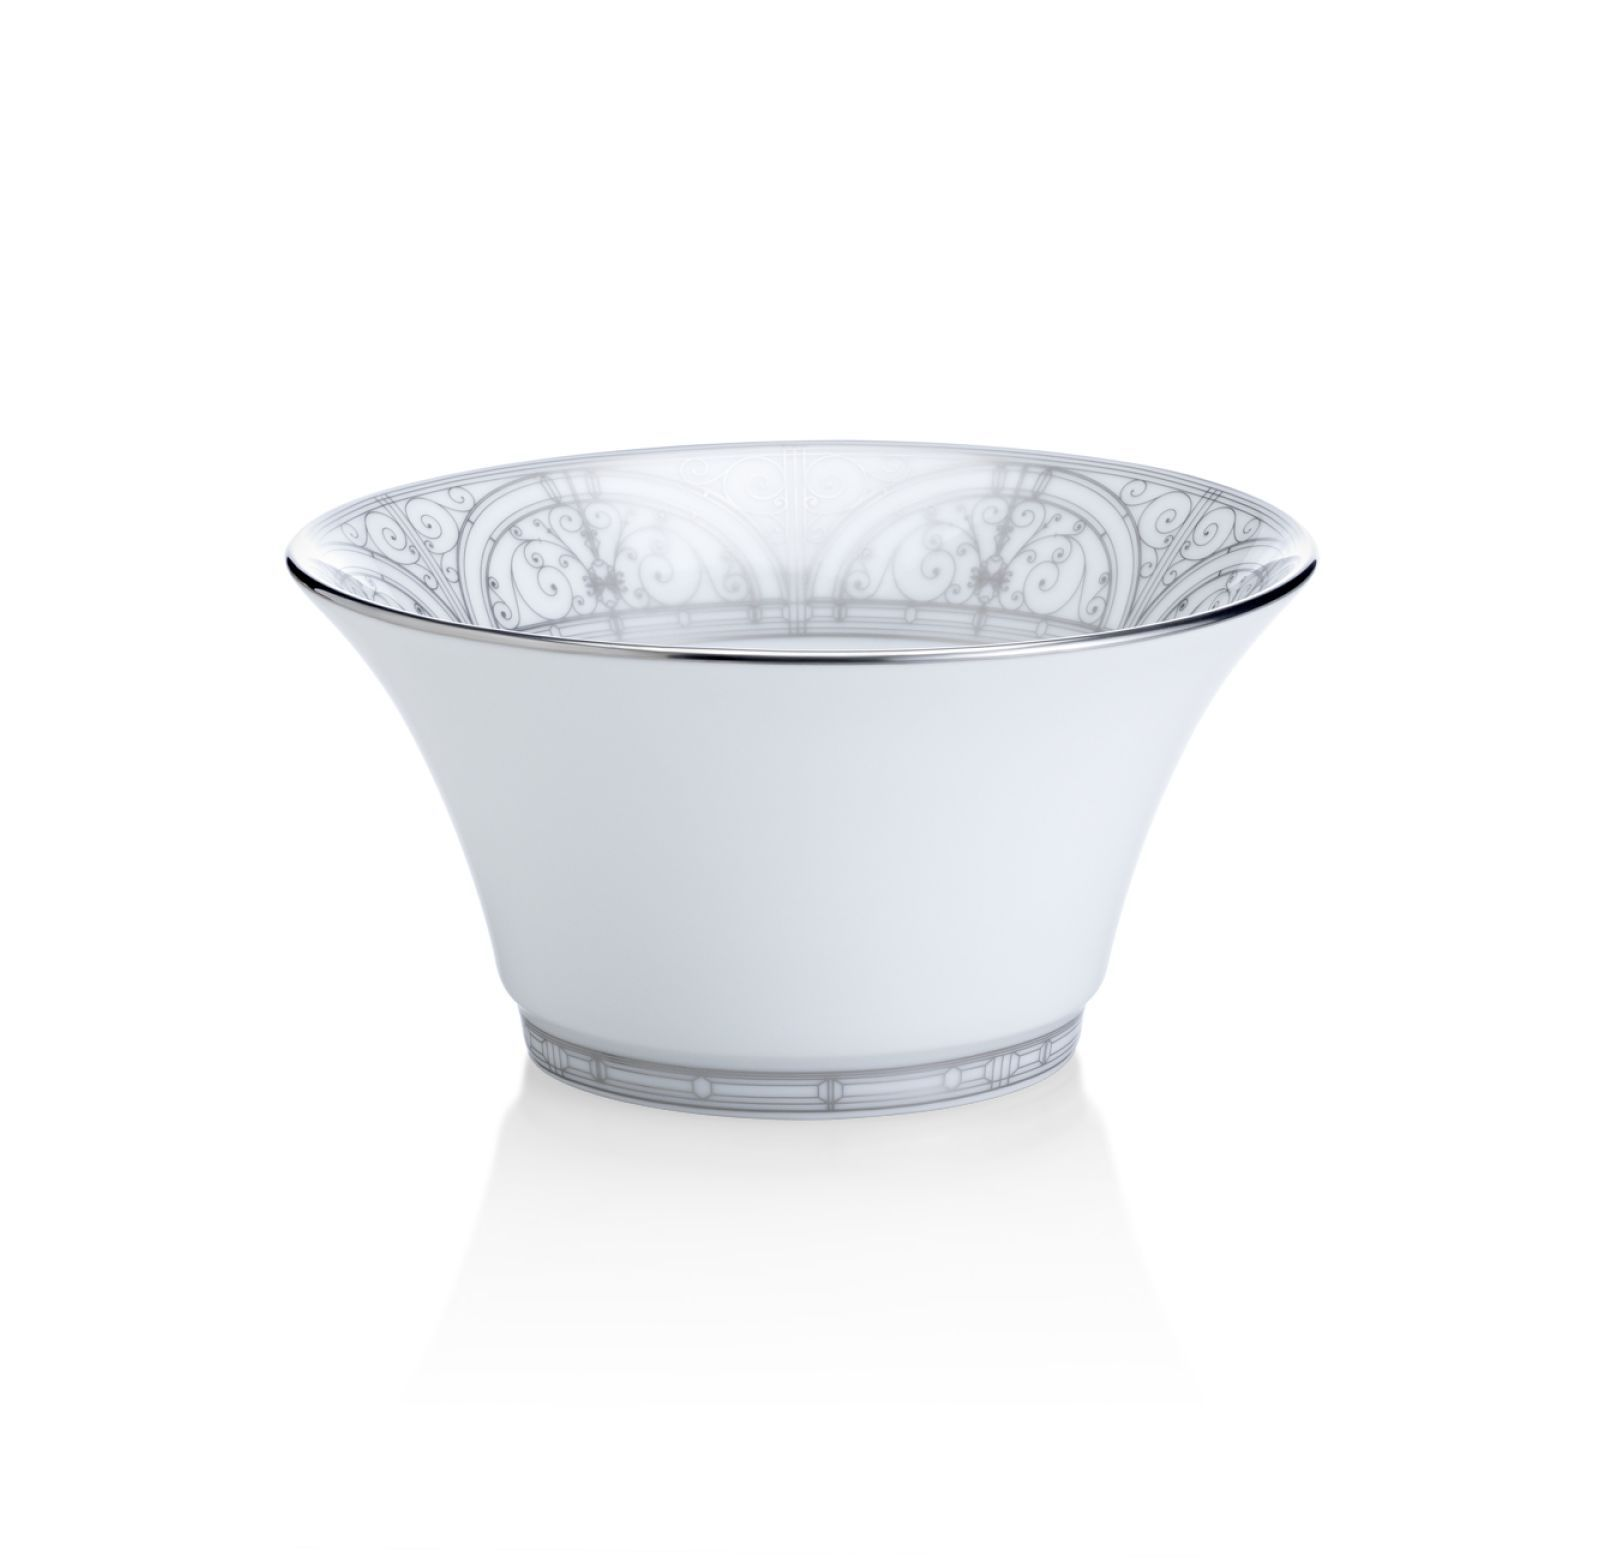 Belle Epoque Cereal Bowl by Haviland | Michael C. Fina